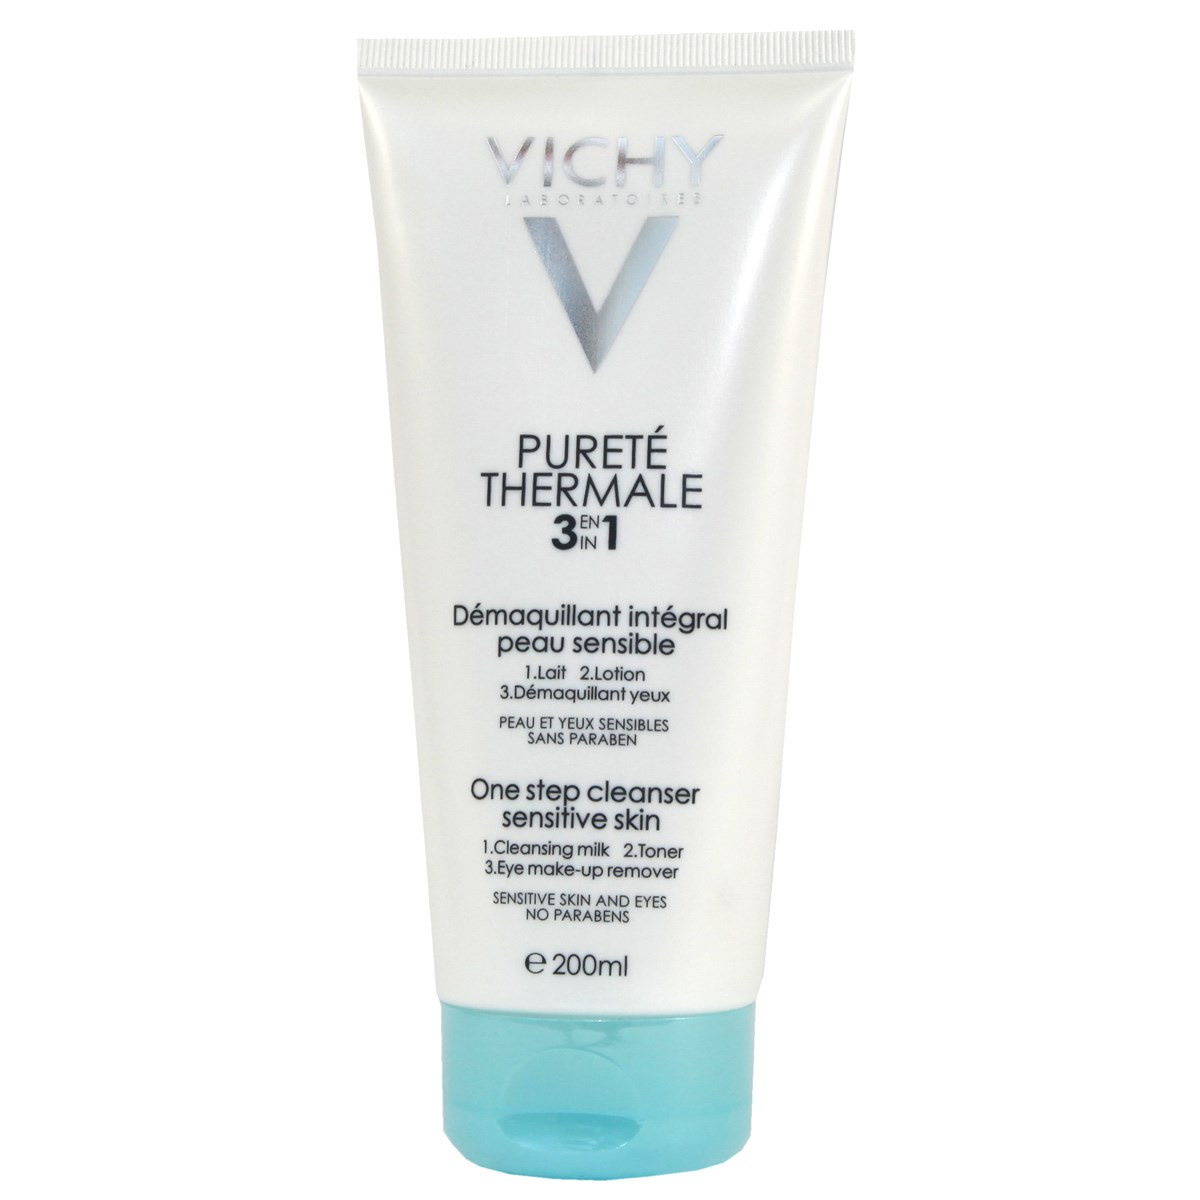 Vichy Purete Thermale 3 In 1 One Step Cleanser Sensitive Skin